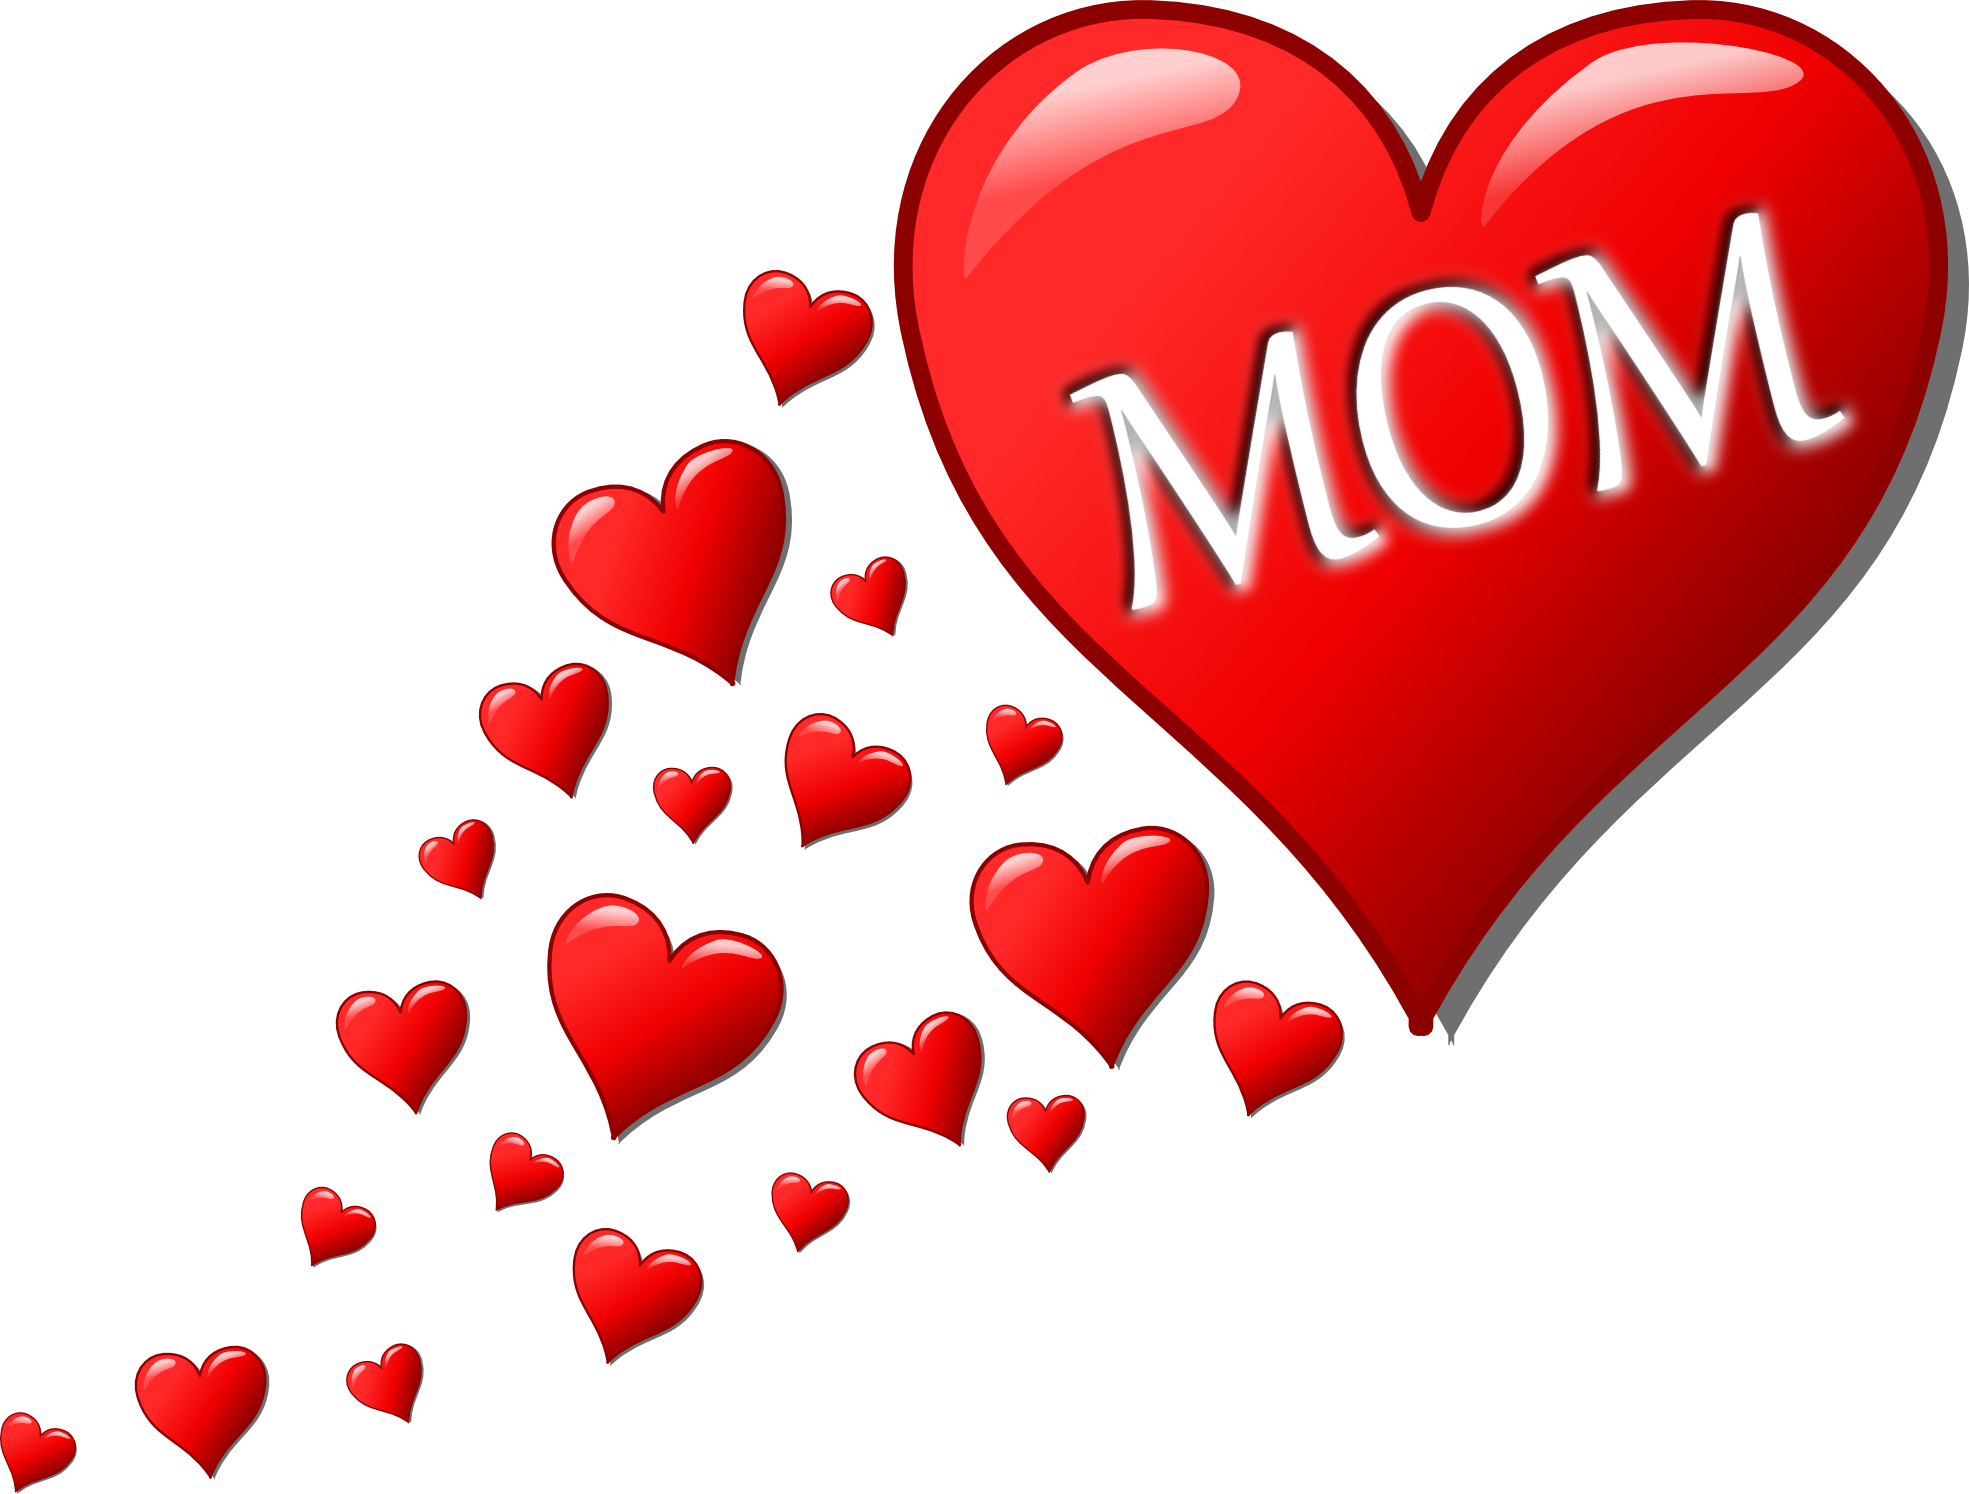 I love mom png. Hearts mother free icons